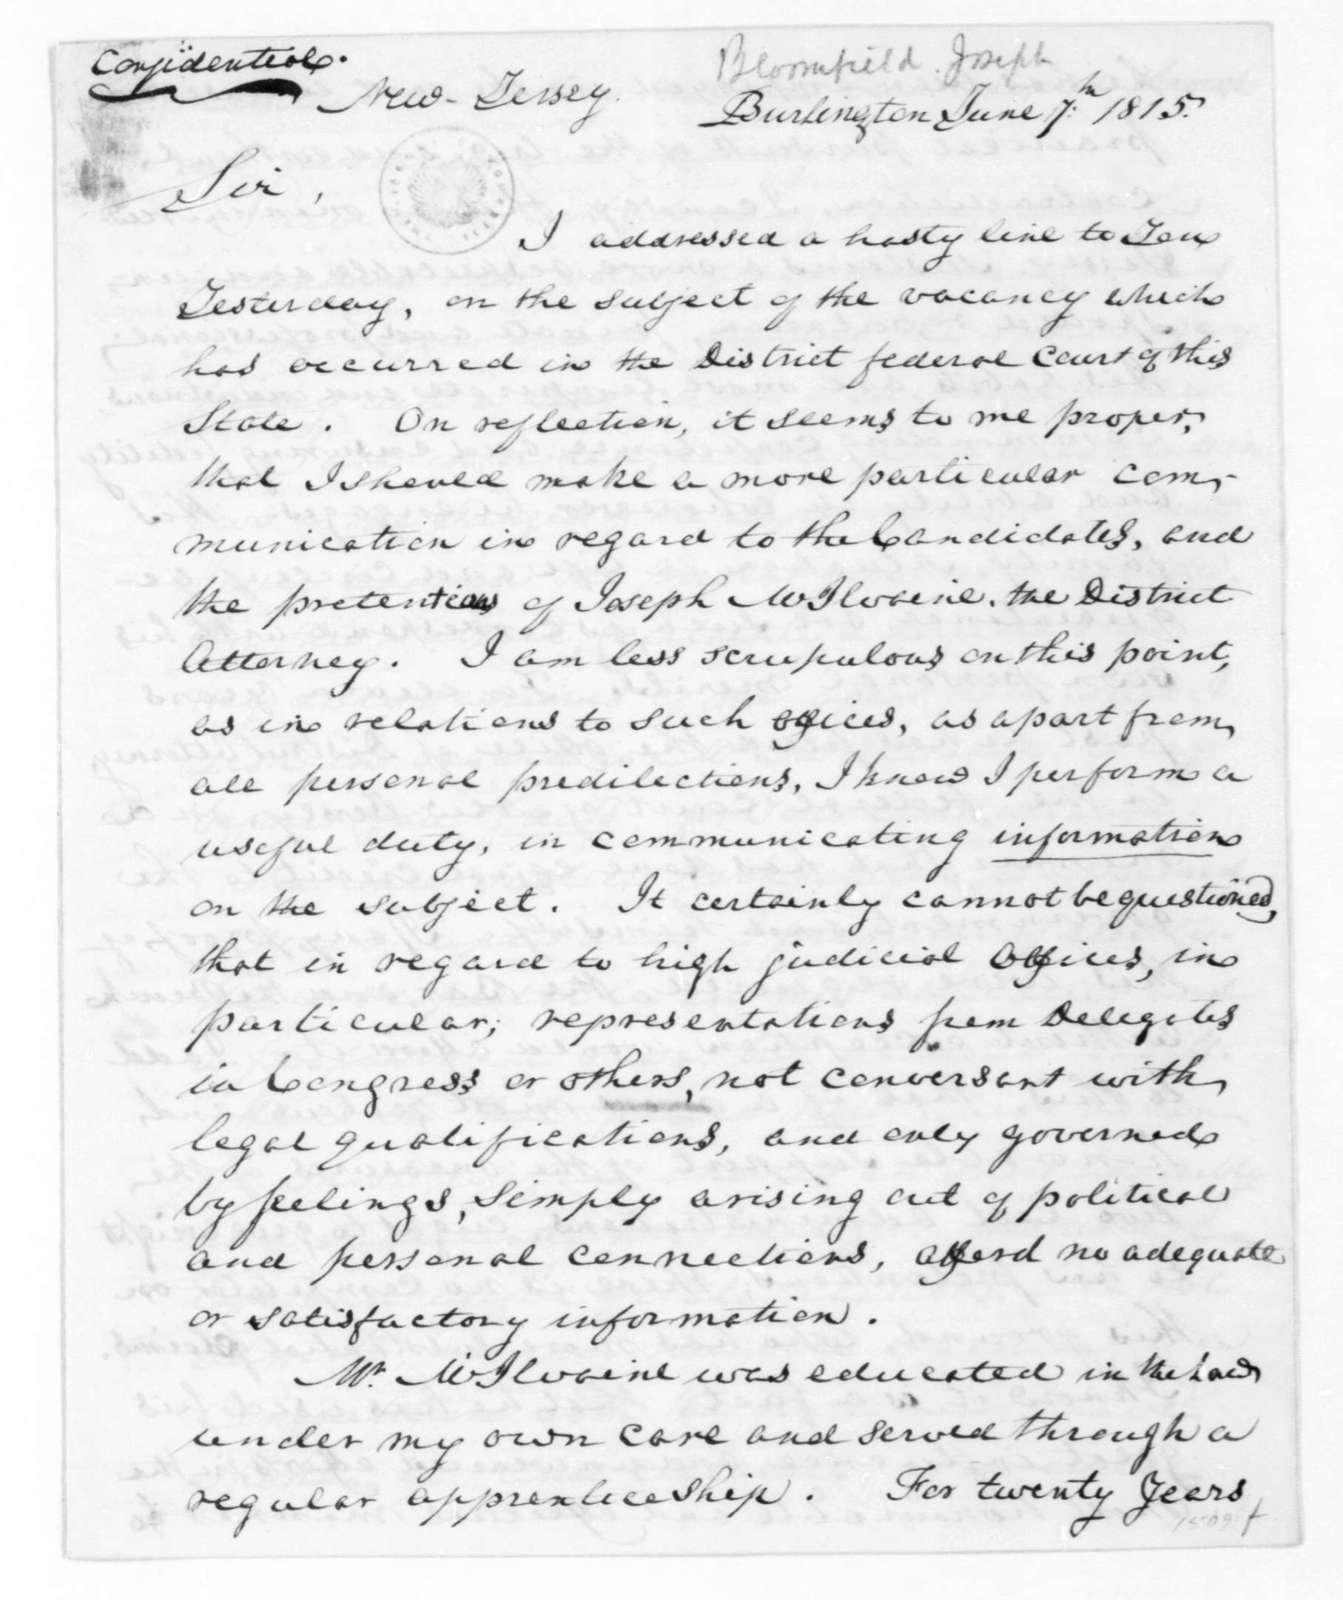 Joseph Bloomfield to James Madison, June 7, 1815.